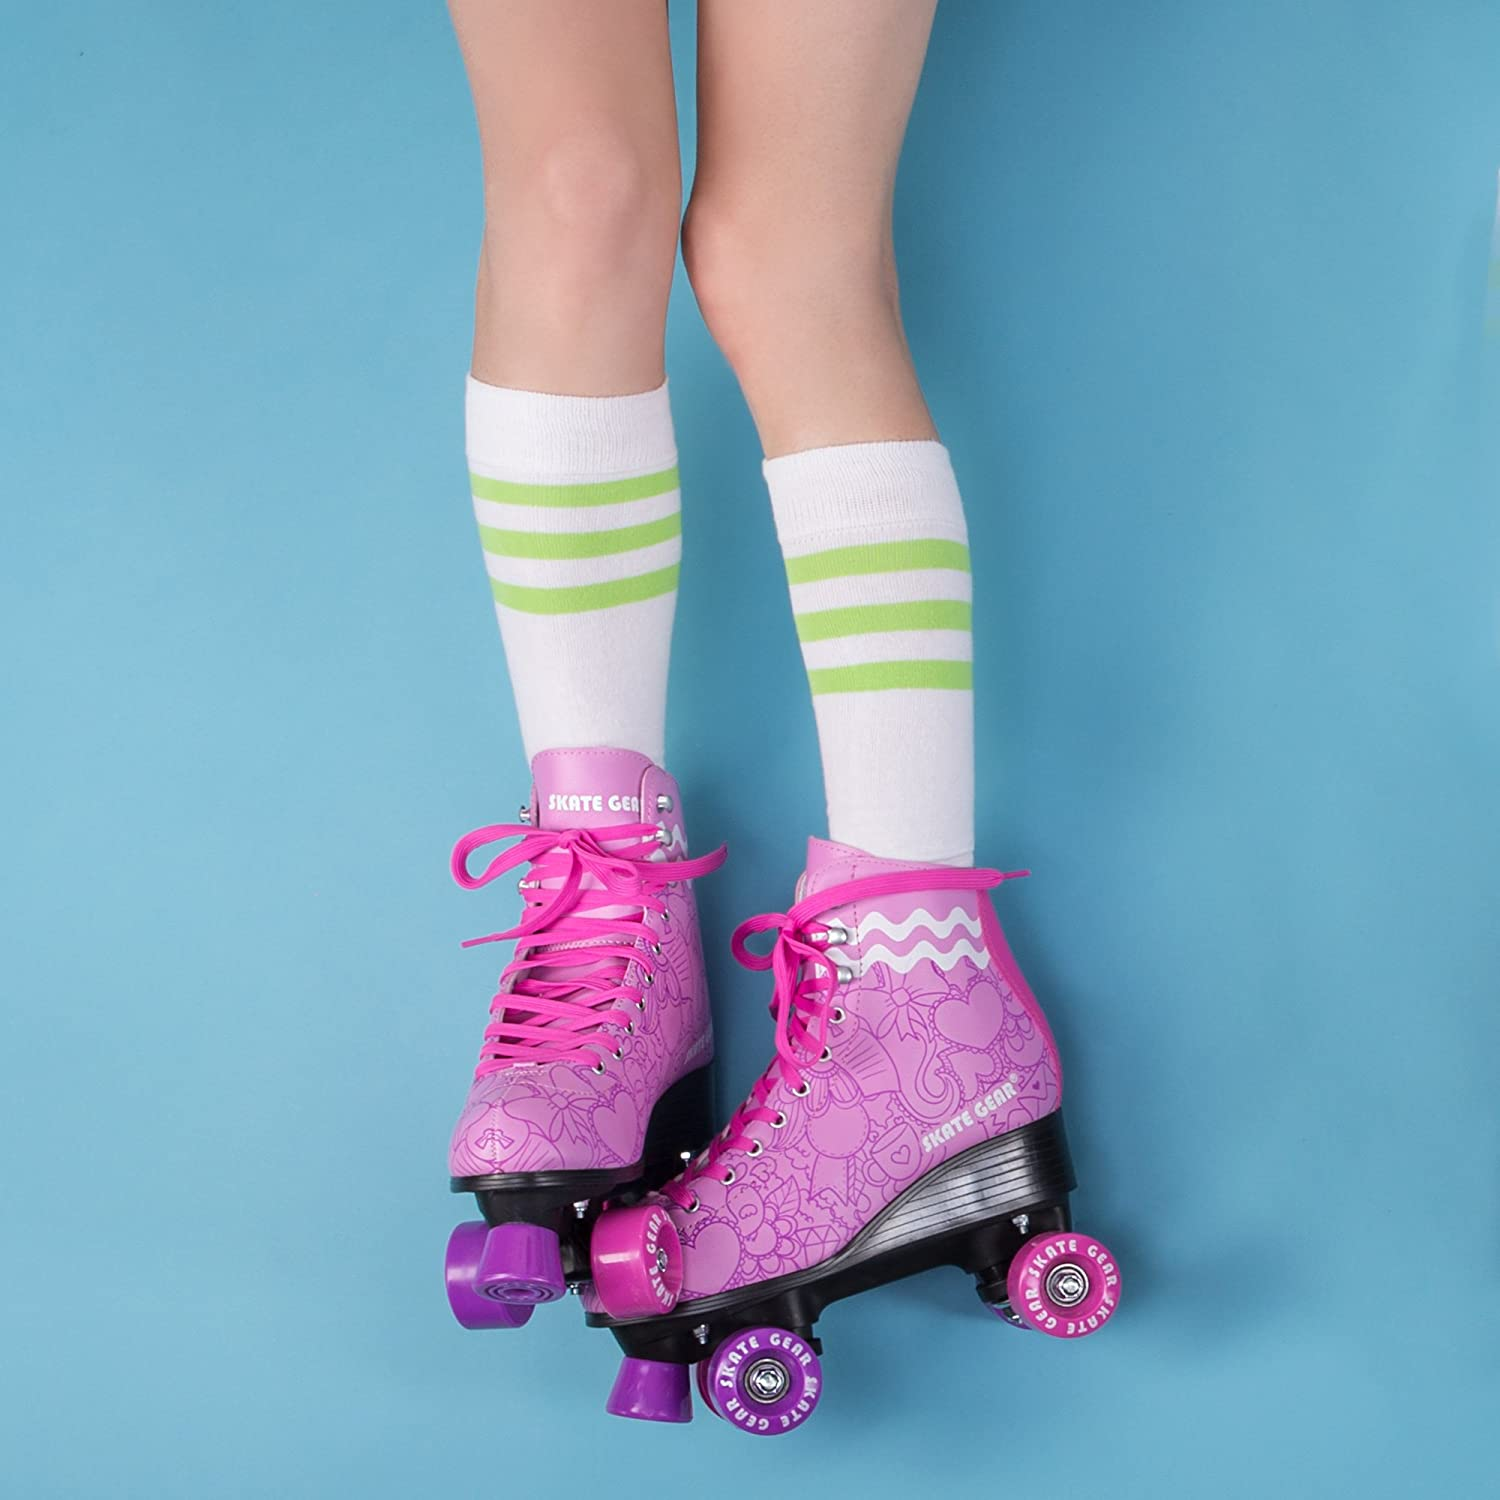 Cal 7 Roller Skates for Indoor /& Outdoor Skating Adults /& Kids Faux Leather Boot with Quad Design Ankle Support Frame